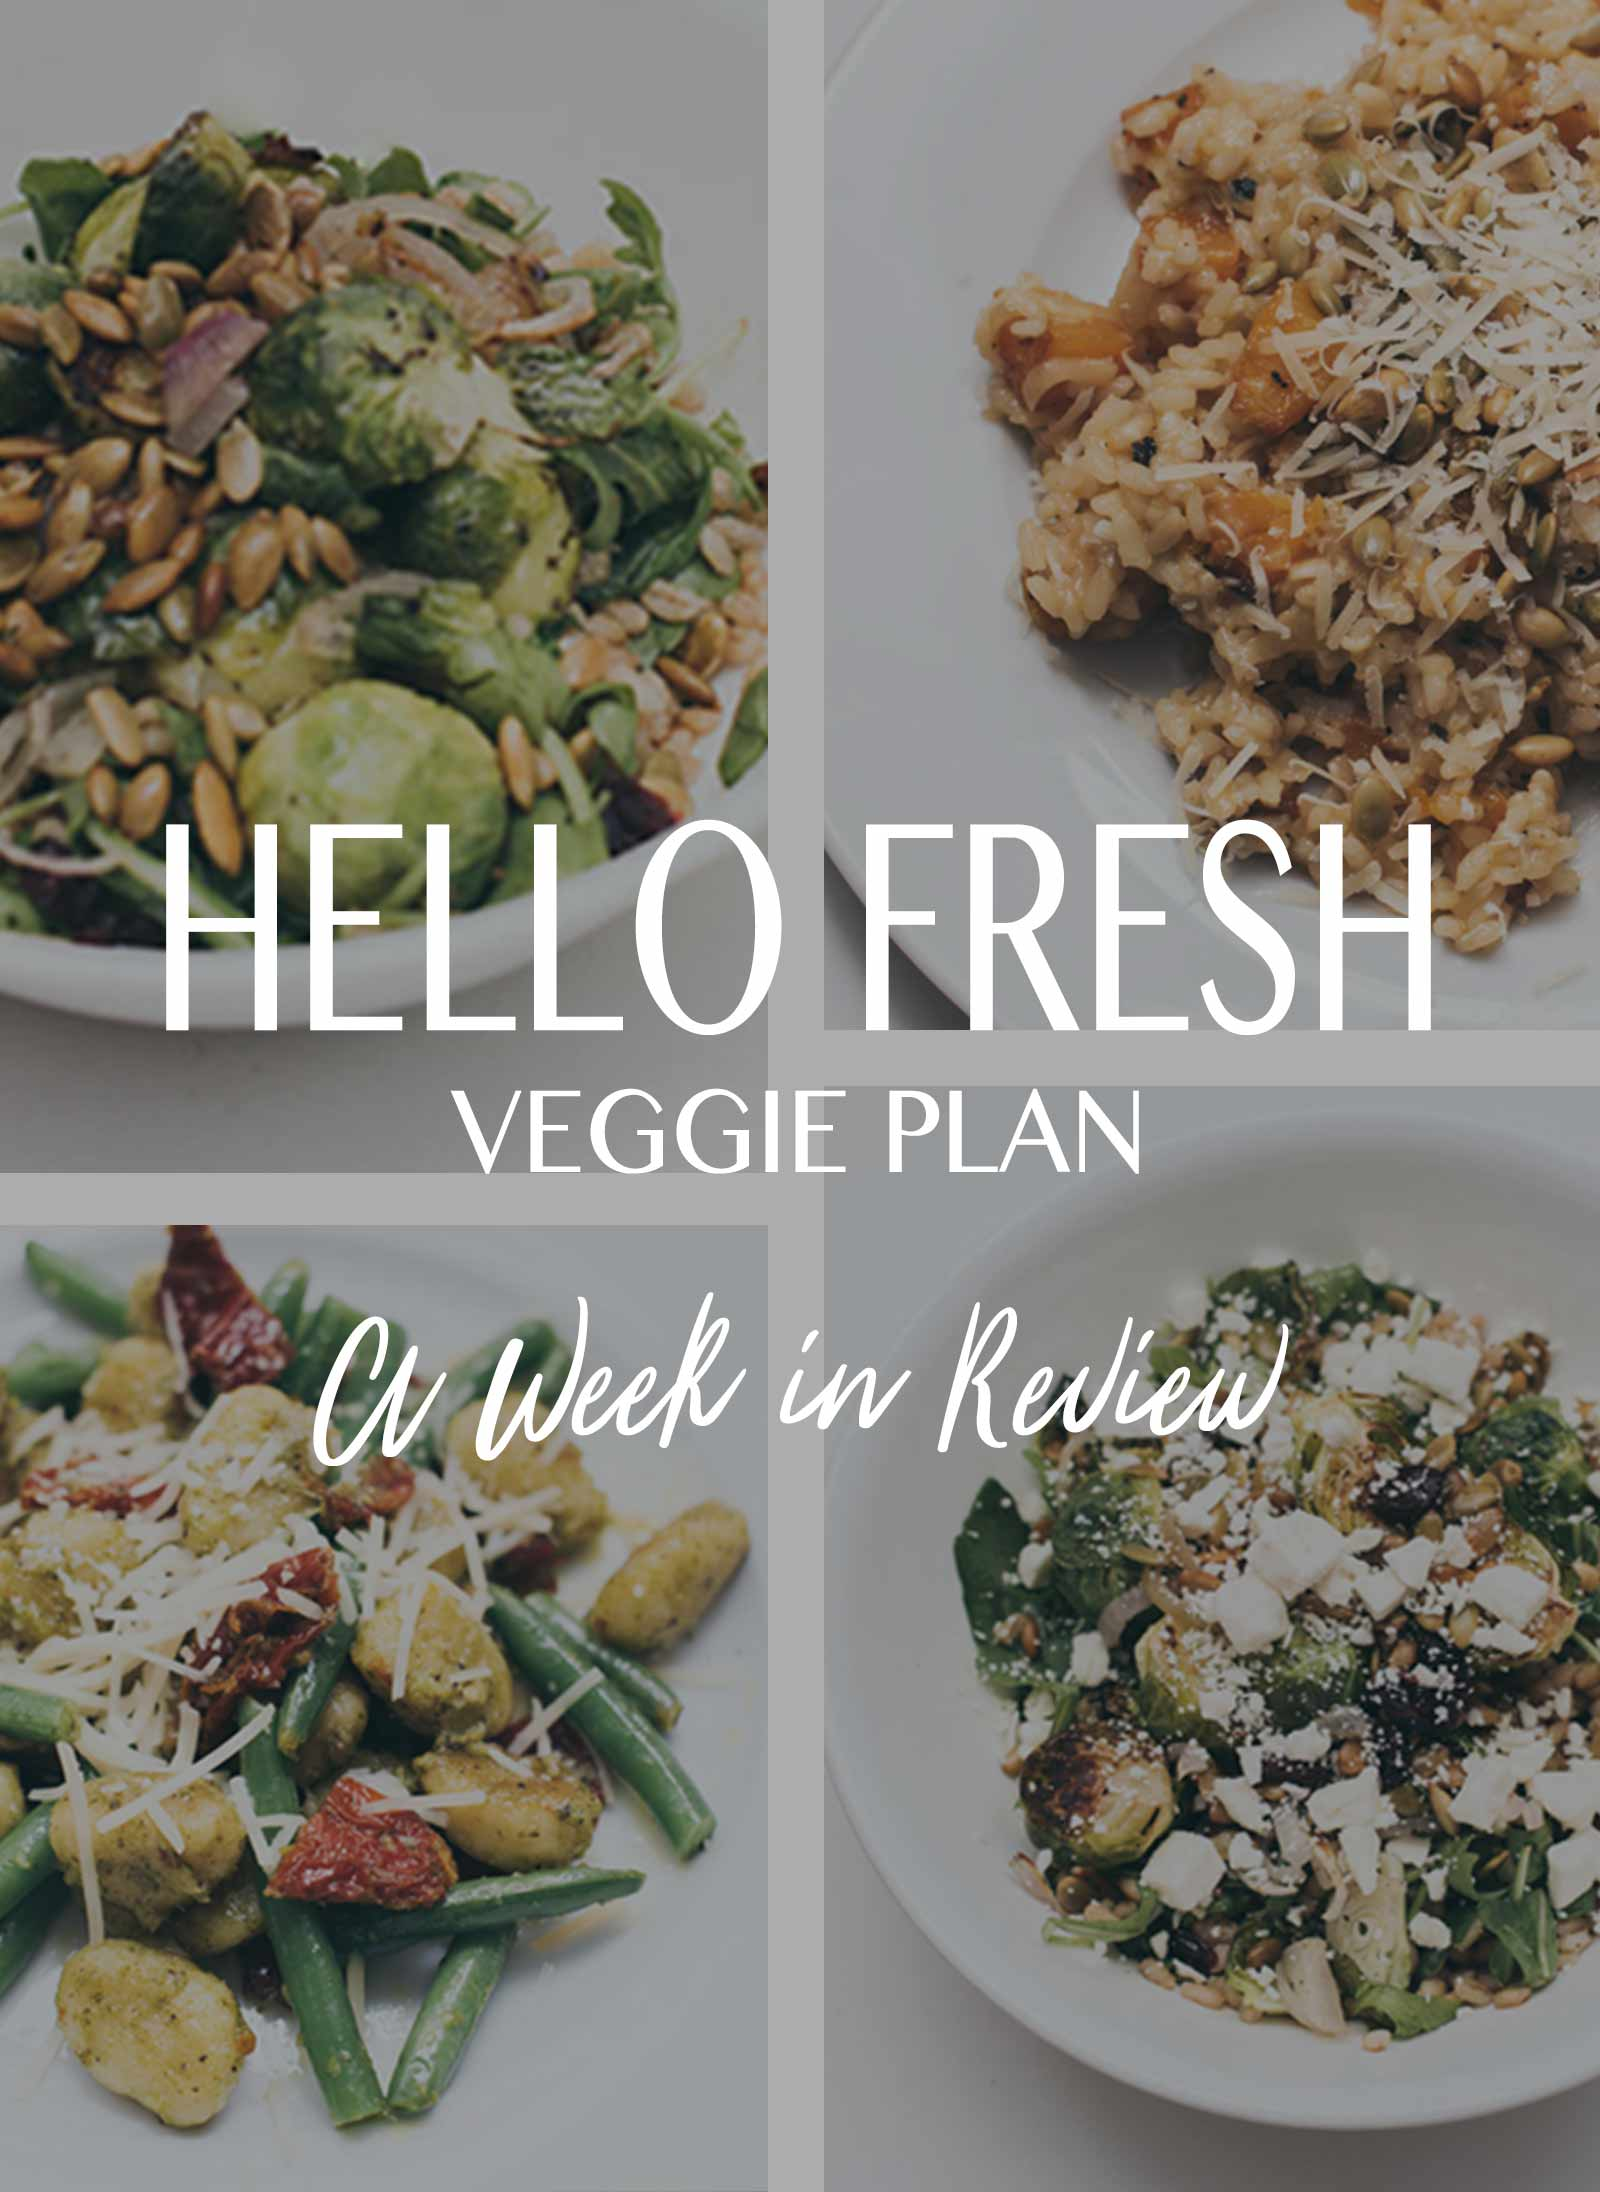 Savings Coupon Code Hellofresh April